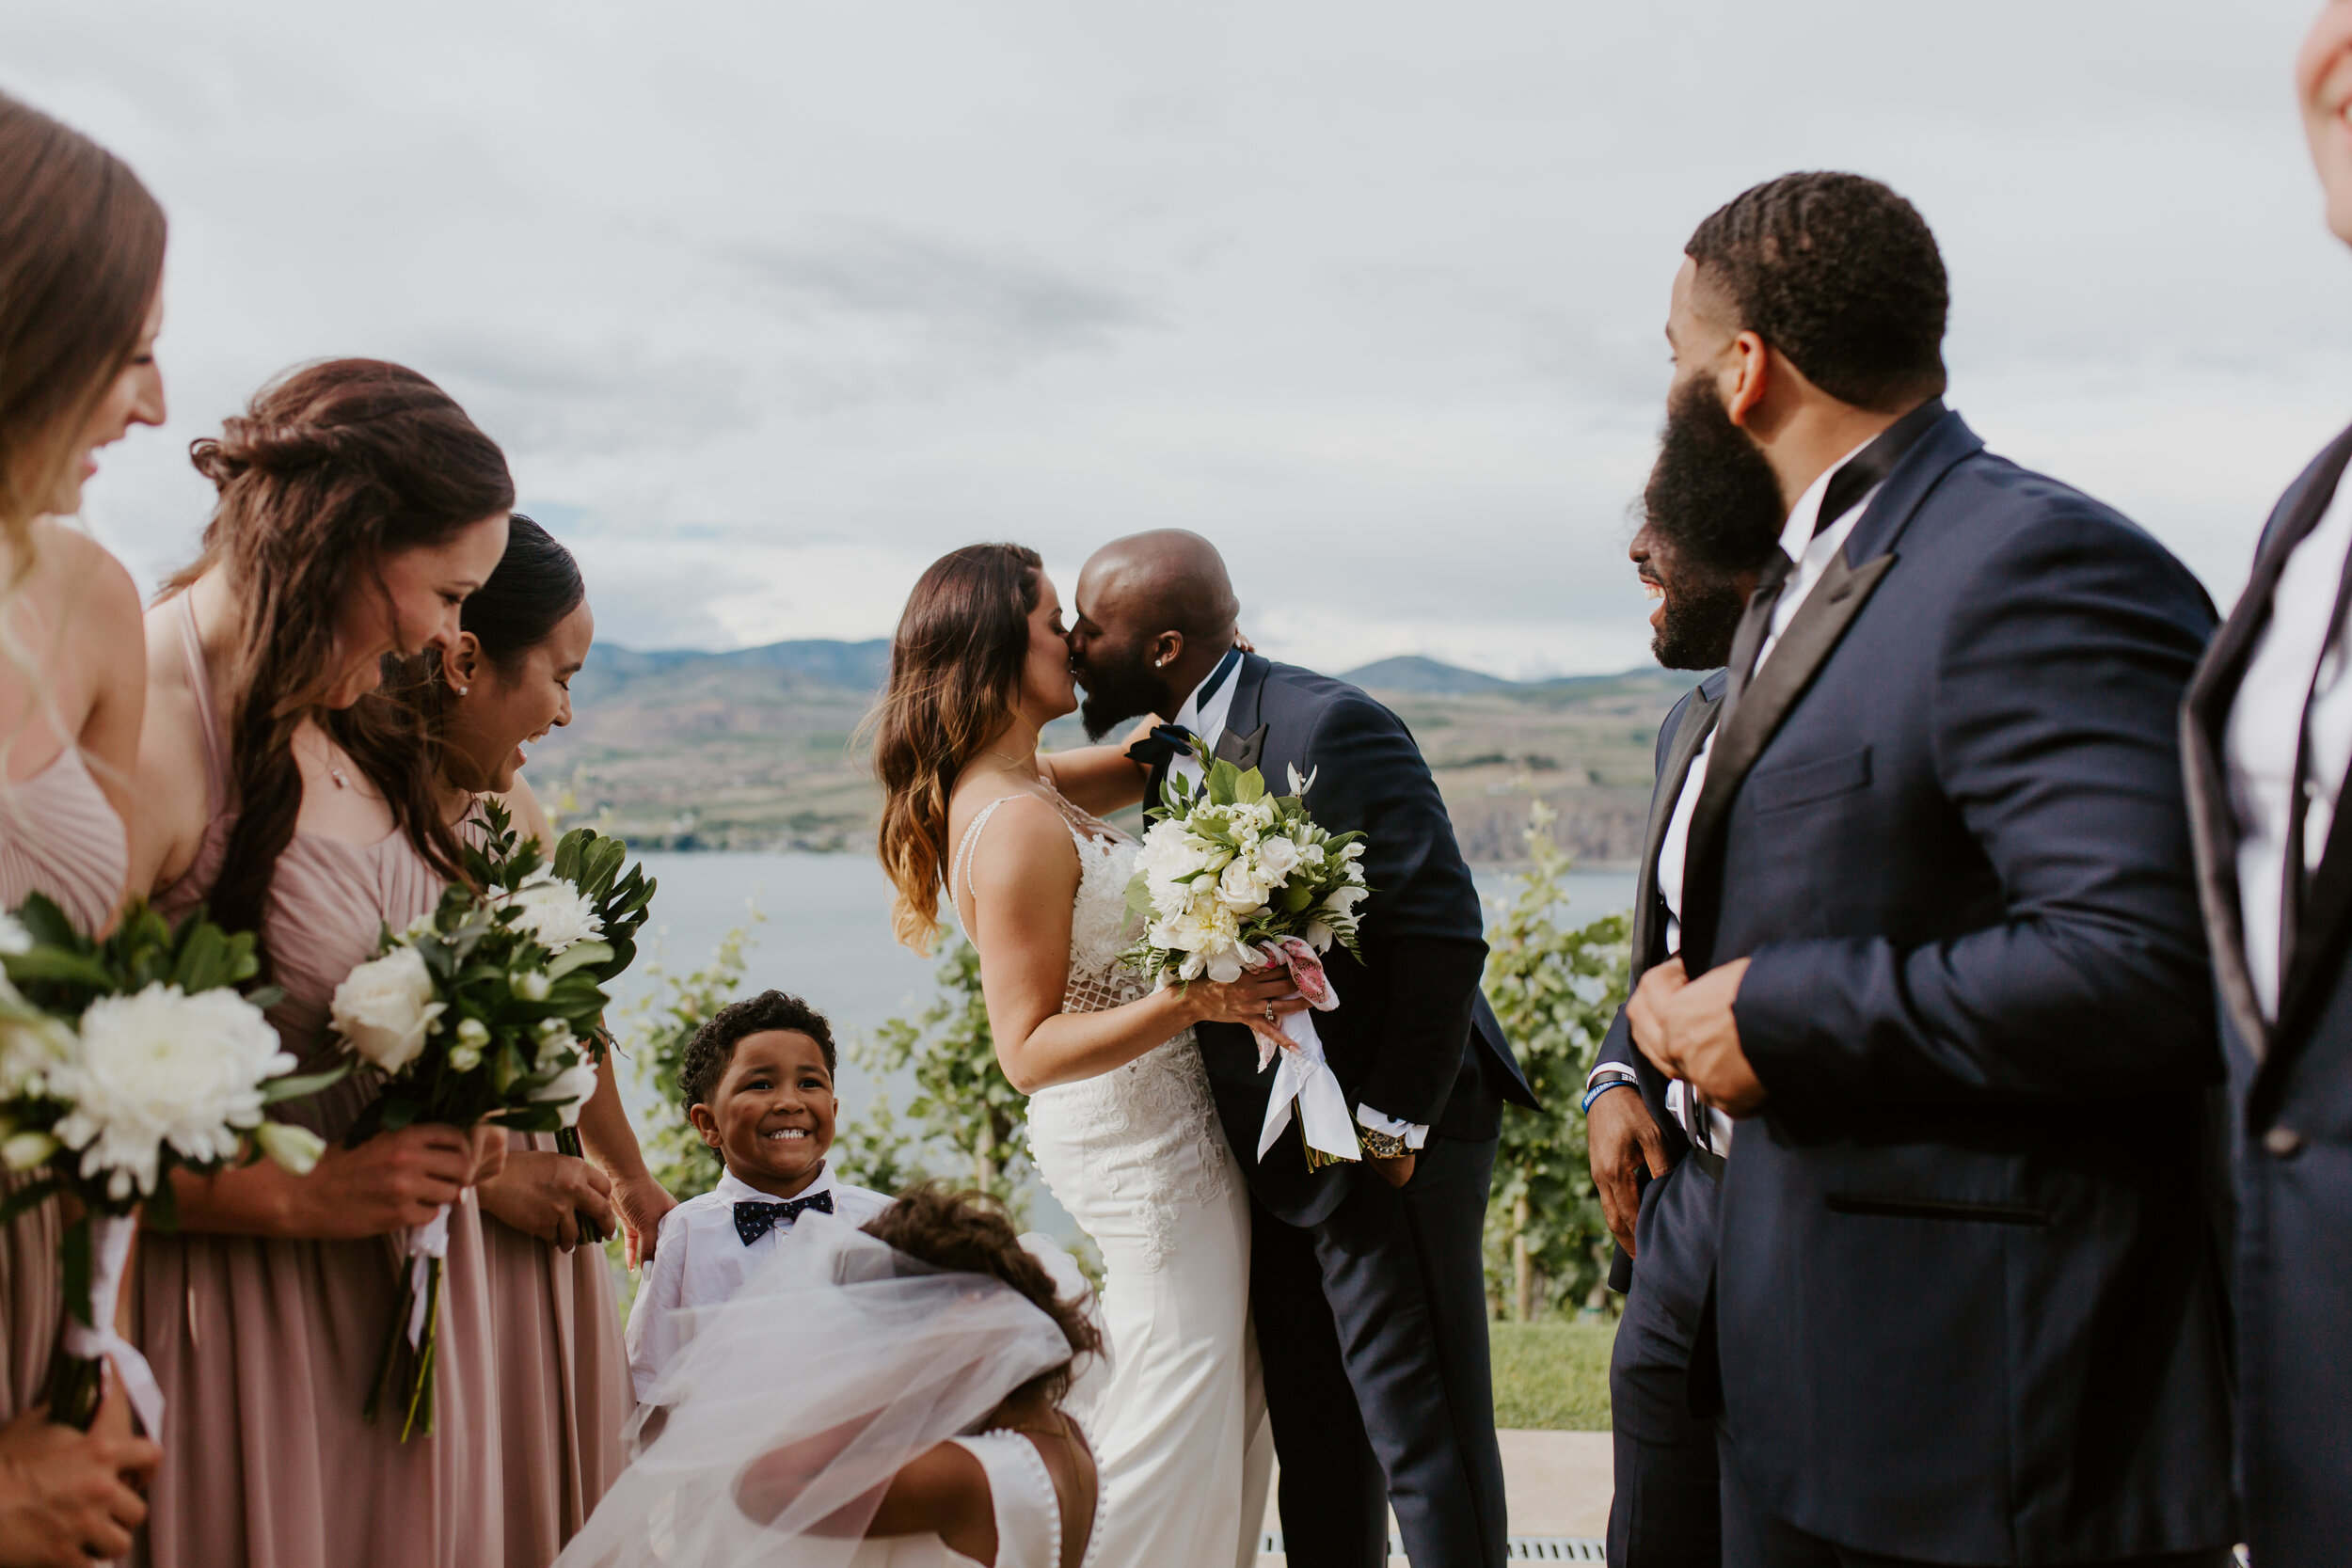 The Patton Wedding - Danielle and QueVonshe - Karma Vineyards - Chelan, Washington - June 7th - Meme Urbane Photography_-1572.jpg